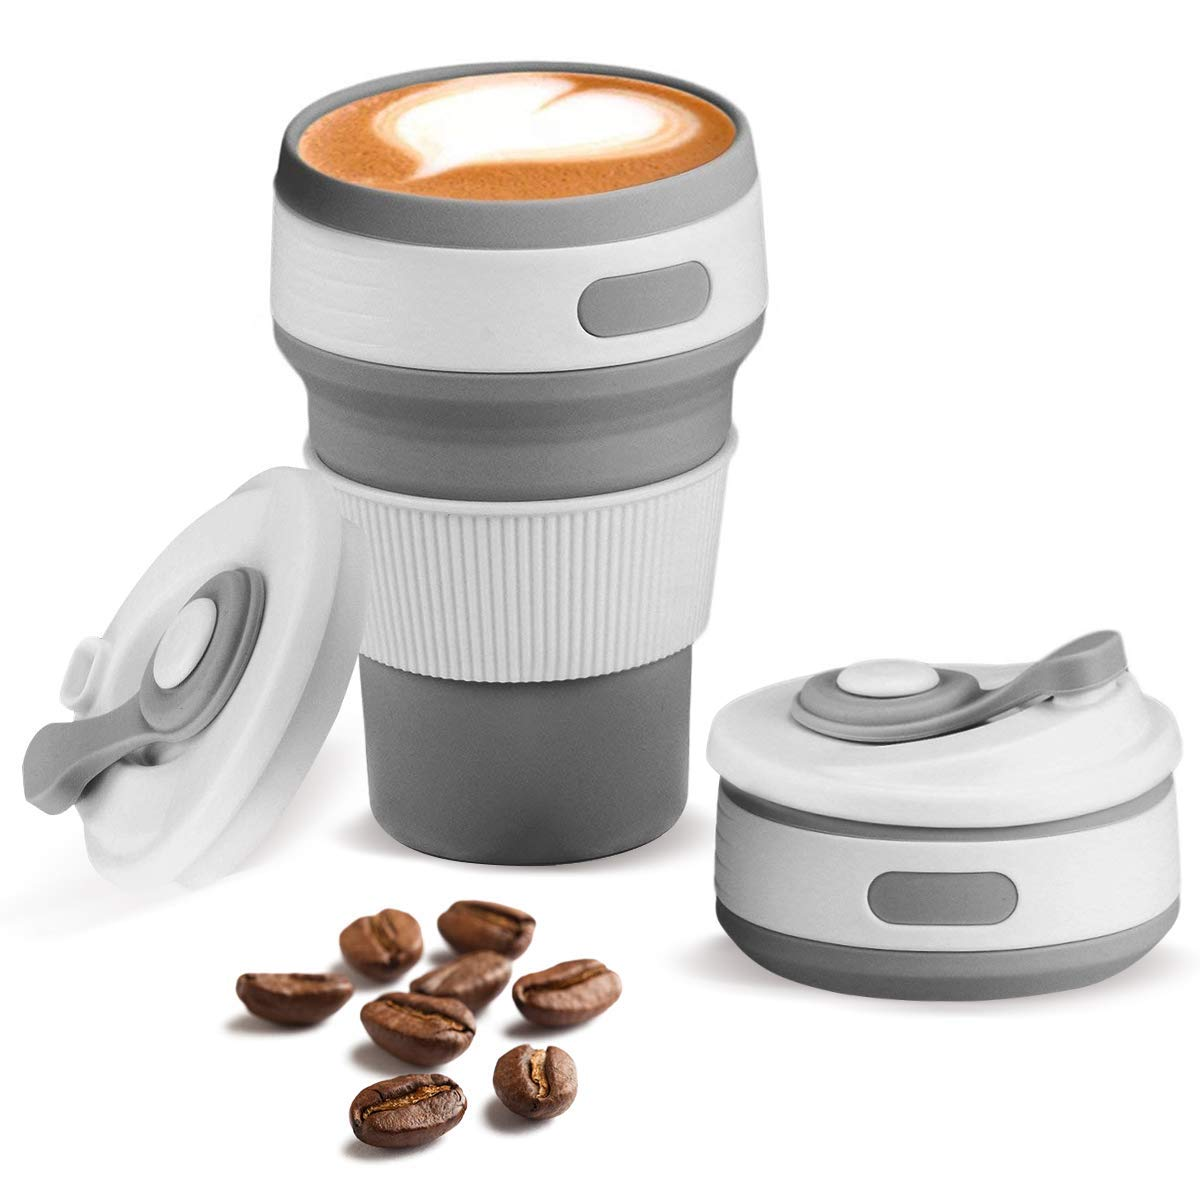 Collapsible Silicone Coffee Cup, Reusable Travel Mug With Leak Proof Lid